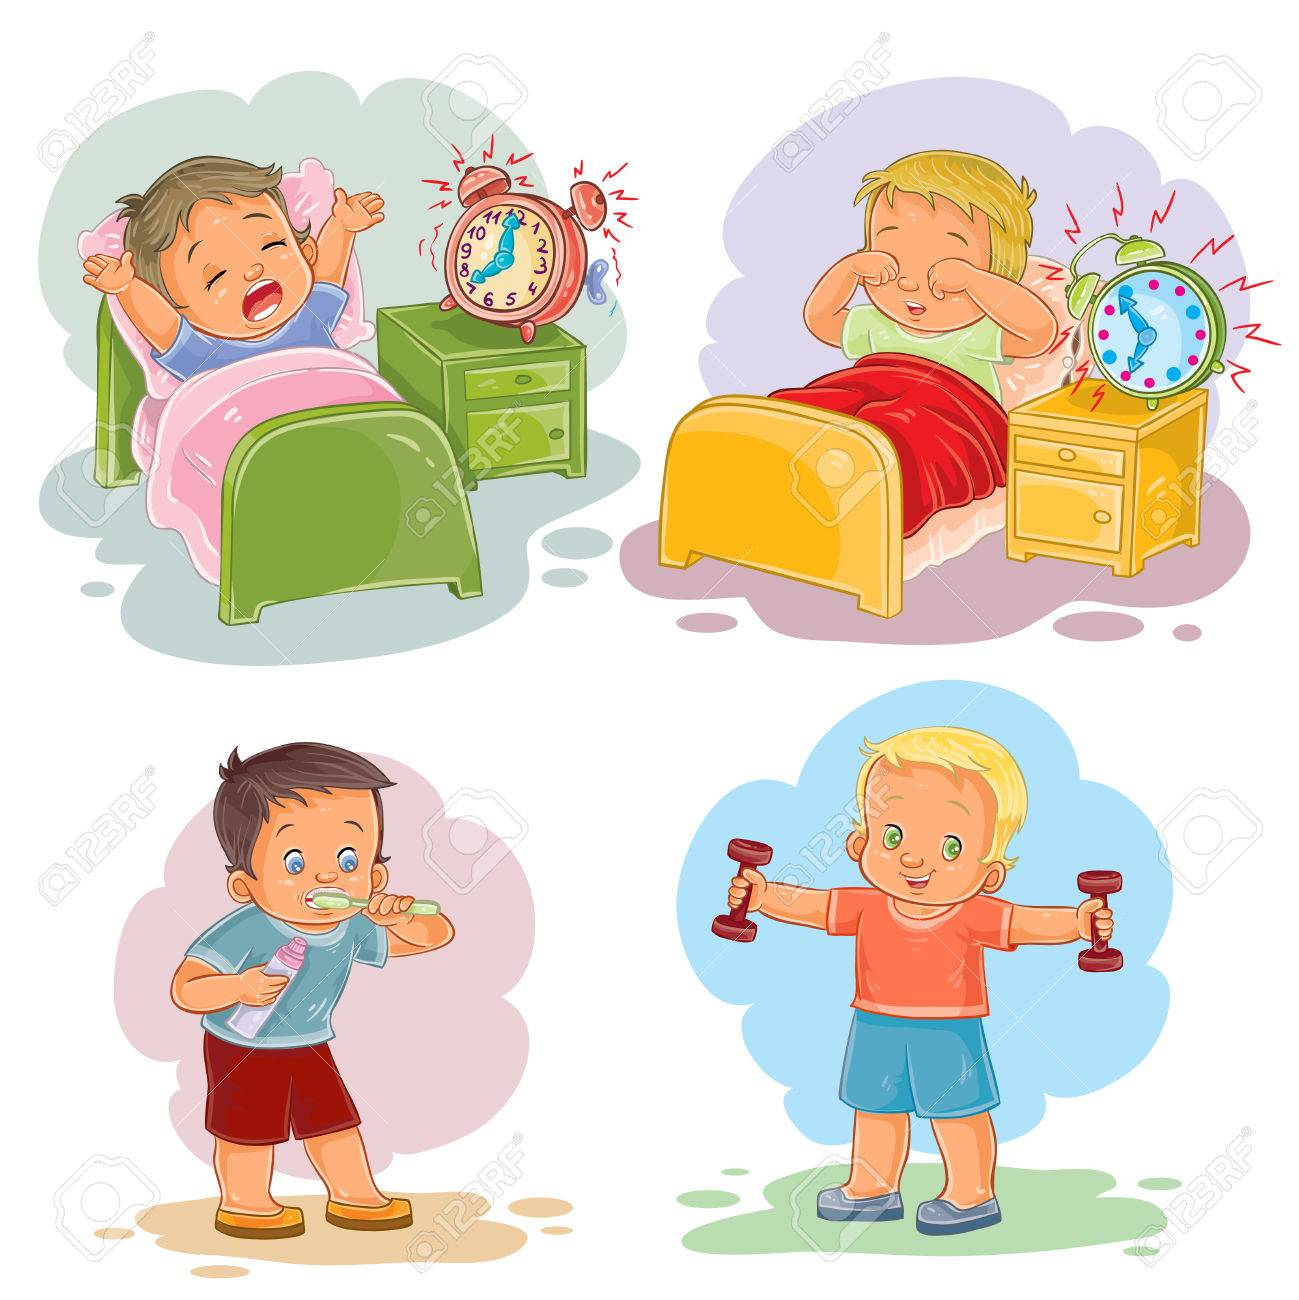 Clip art illustrations of little children wake up in the morning.